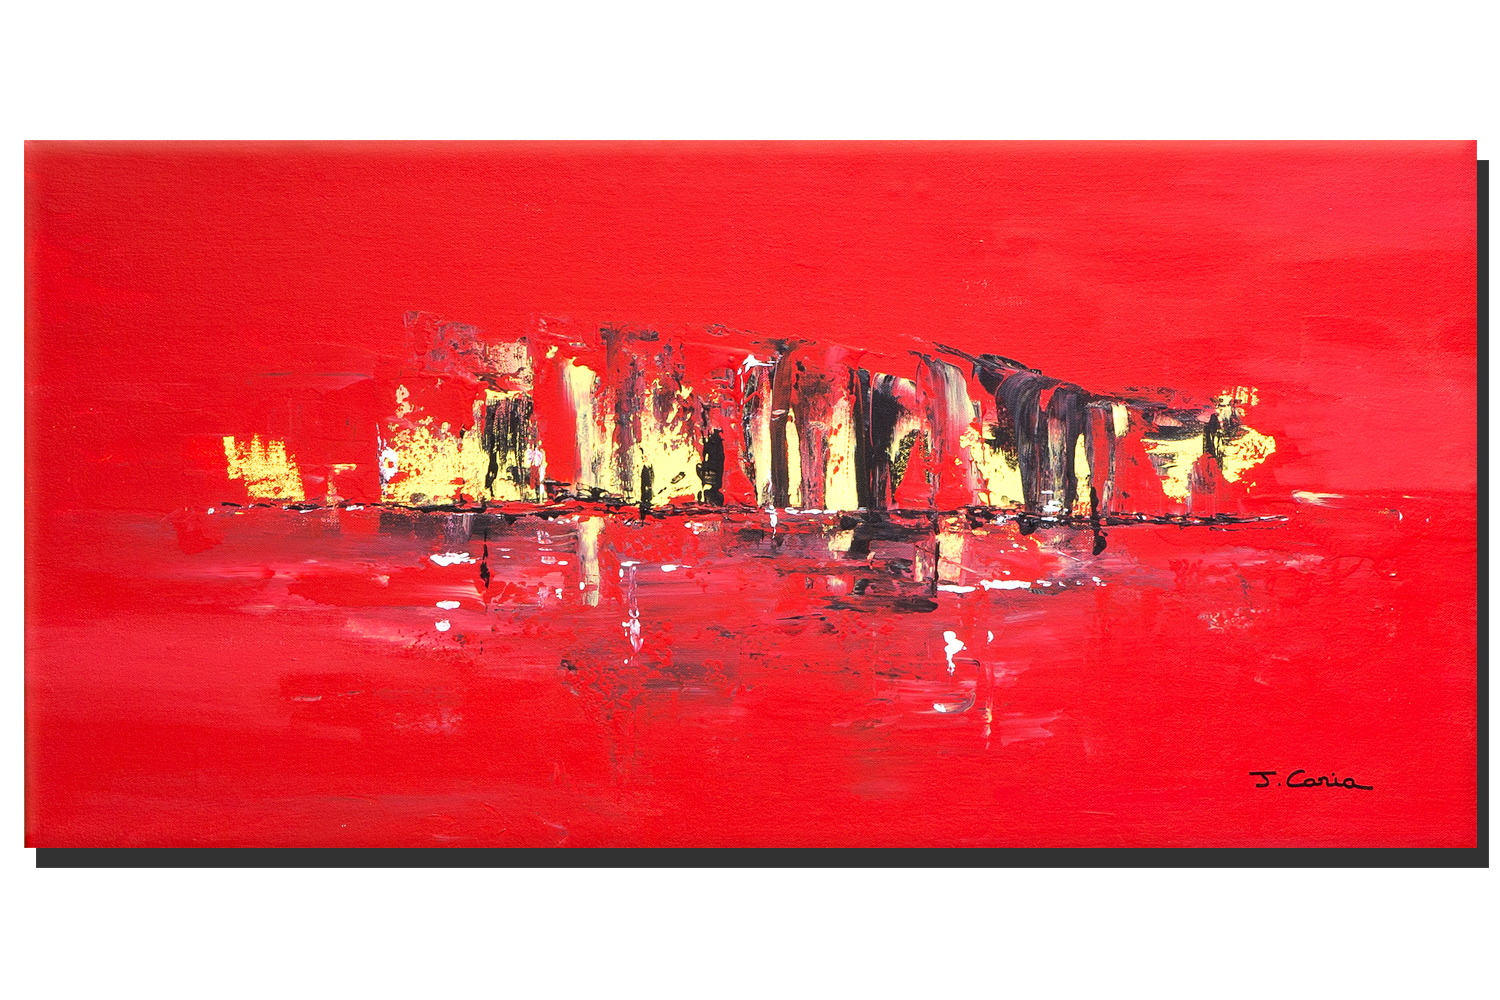 Tableau mer contemporain rouge format panoramique grandes dimensions d co couleur intense - Ville melange de rouge et blanc ...